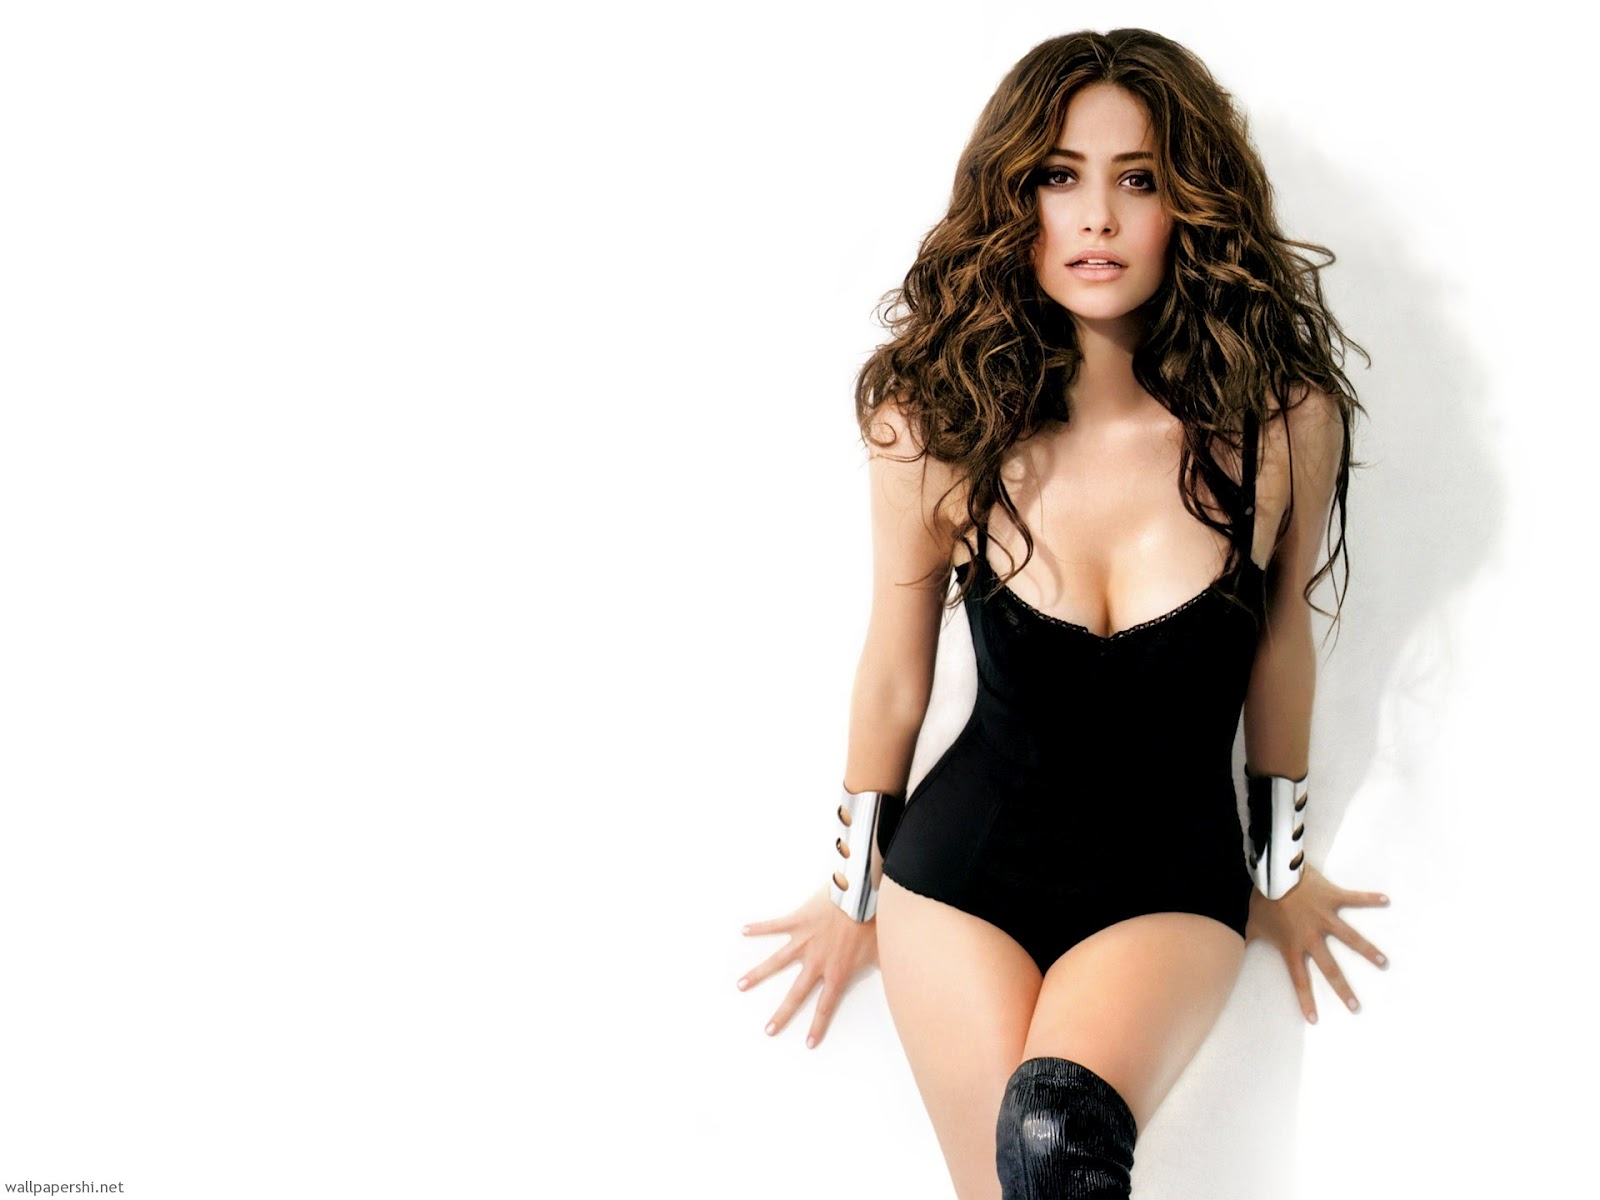 Emmy Rossum Hot Images/Pictures 2012 | All Hollywood Stars